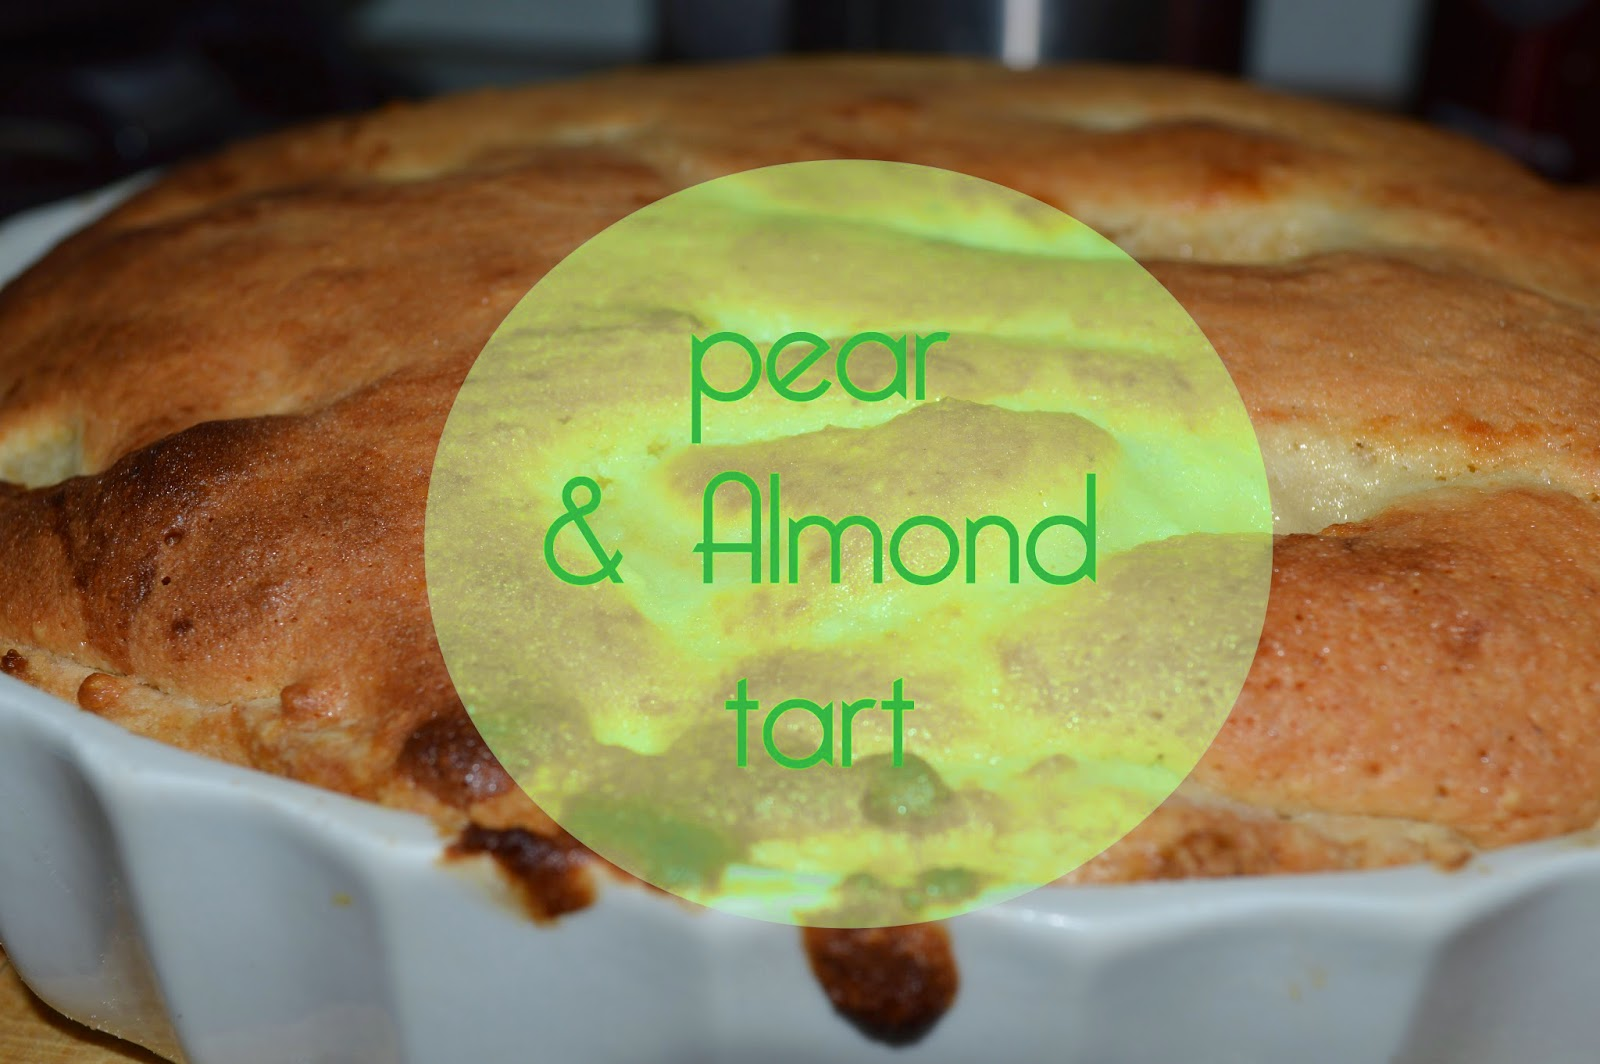 pear and almond tart, marzipan, fruit, home baking, recipe,  classic combo, home made, tasty, delicious, food, cooking, yummy, treat, pudding, British